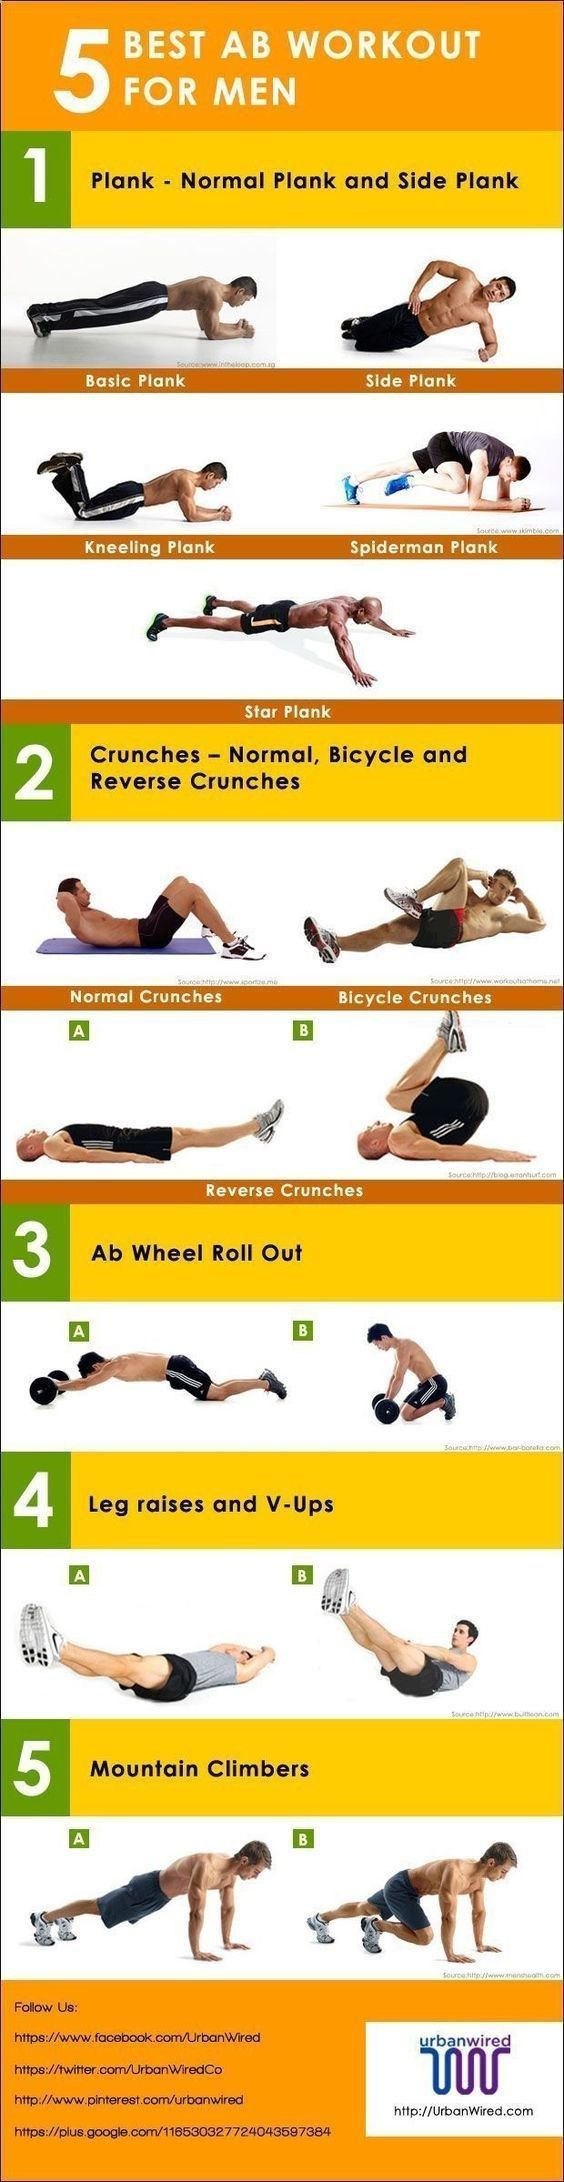 The best six pack abs workout for men ab exercises to get ripped six pack fast #rippedabsmen #sixpackabs